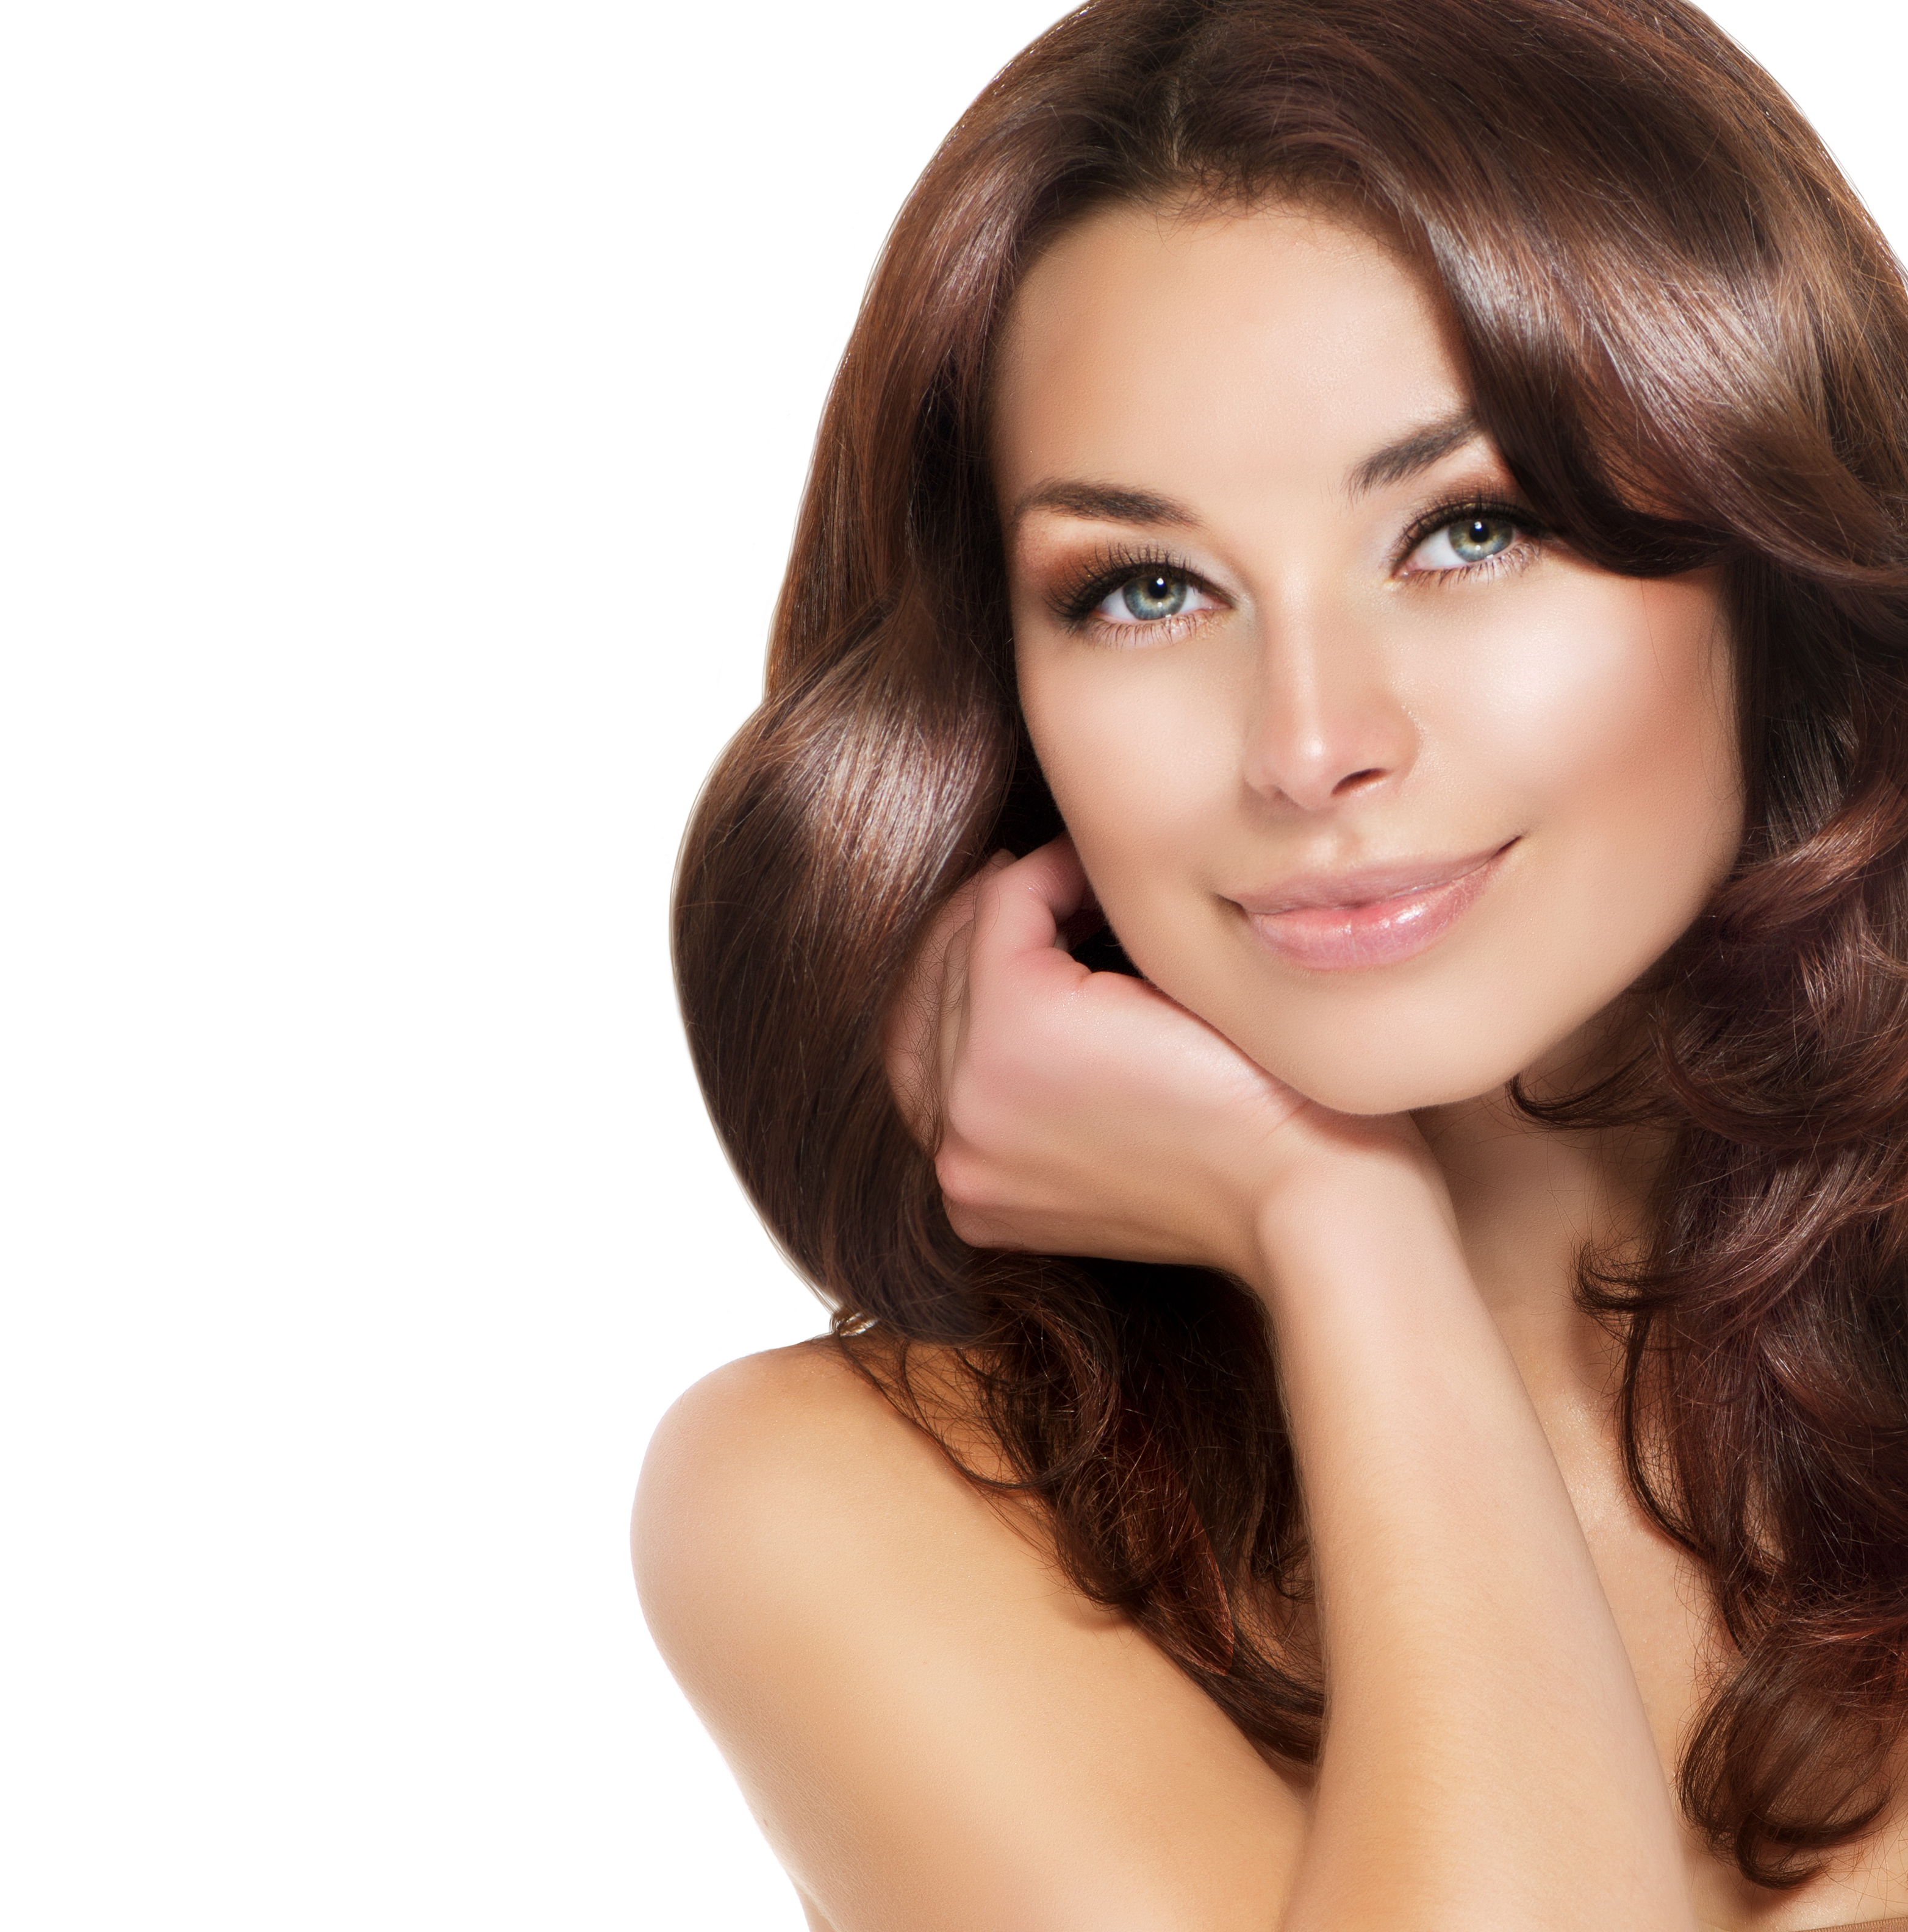 Non-Surgical Female Hair Loss Treatment Options